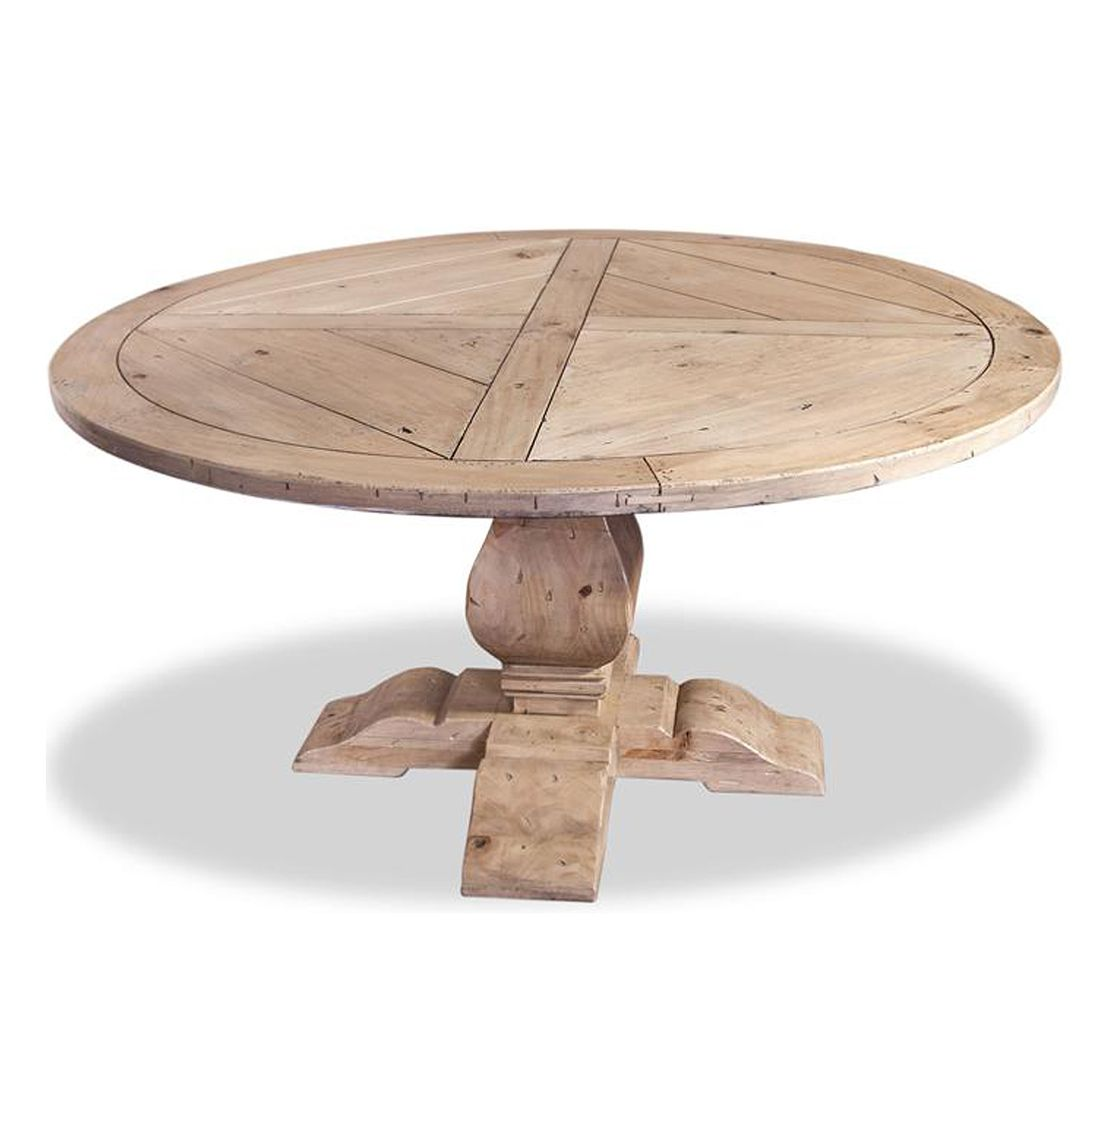 Round Dining Table Ludlum Neoclical Rustic Light Wood 60 D